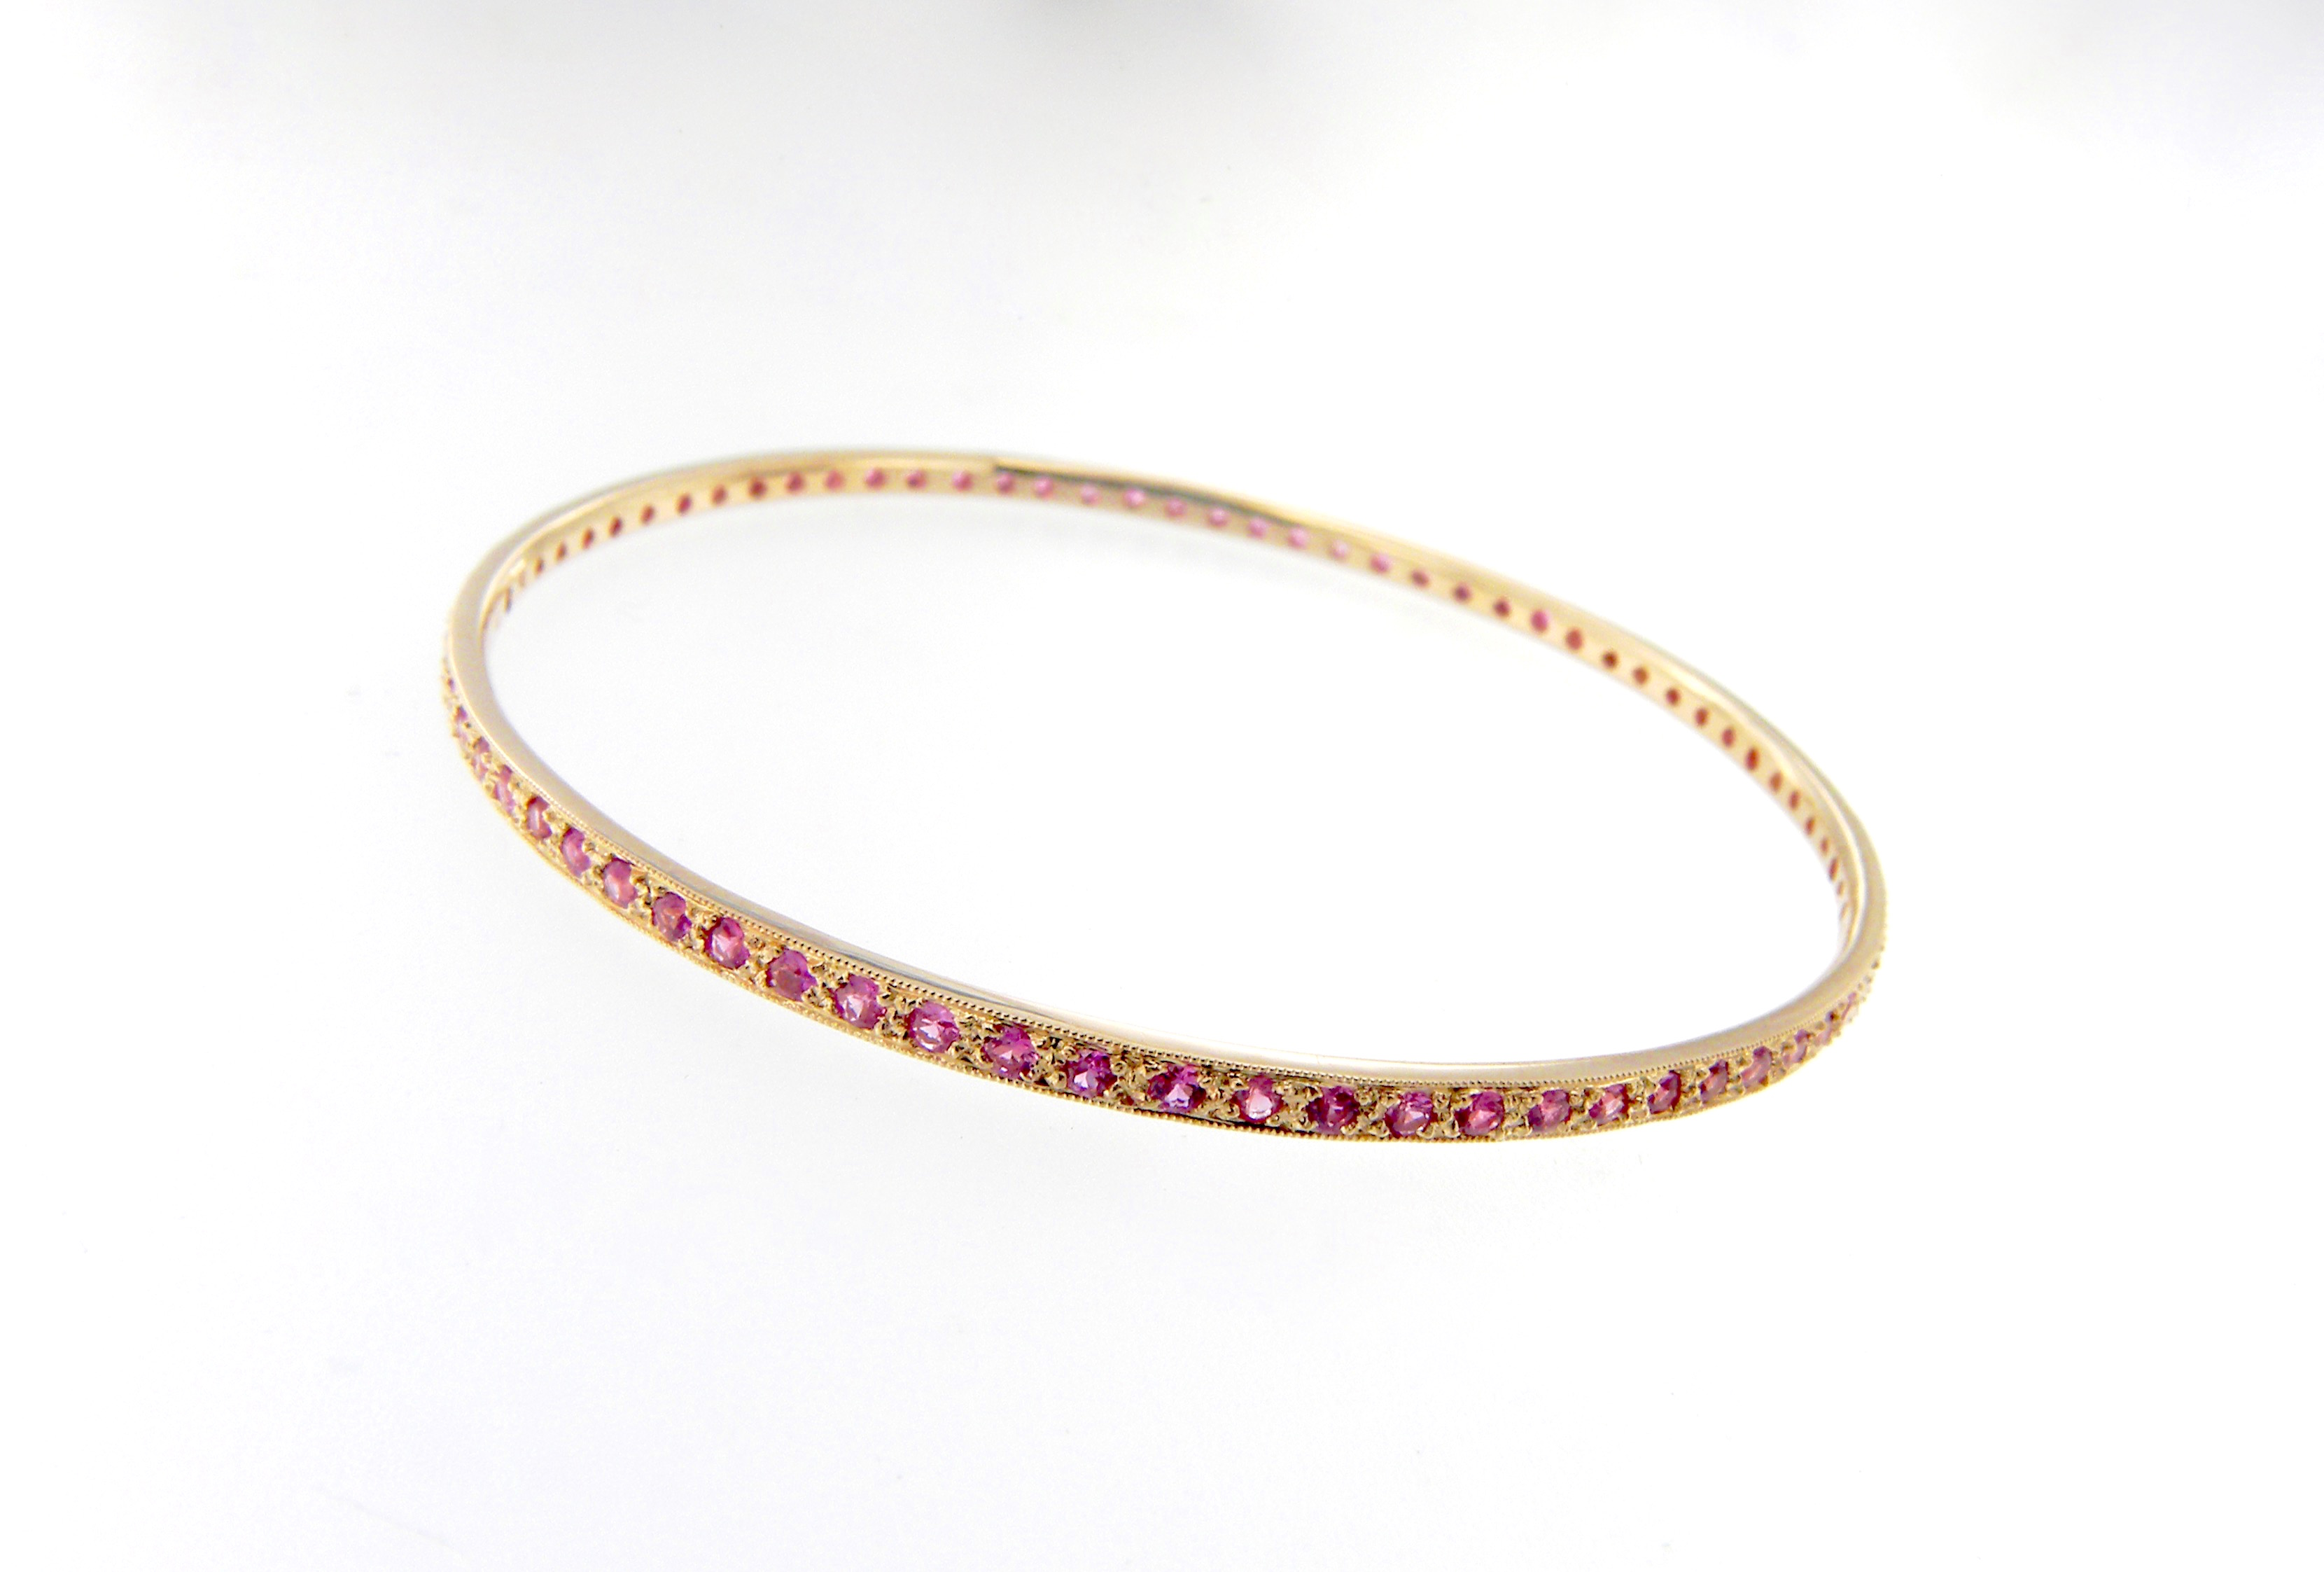 les s bracelet pink and online louis jewels craquantes eco christies sapphire vuitton diamond